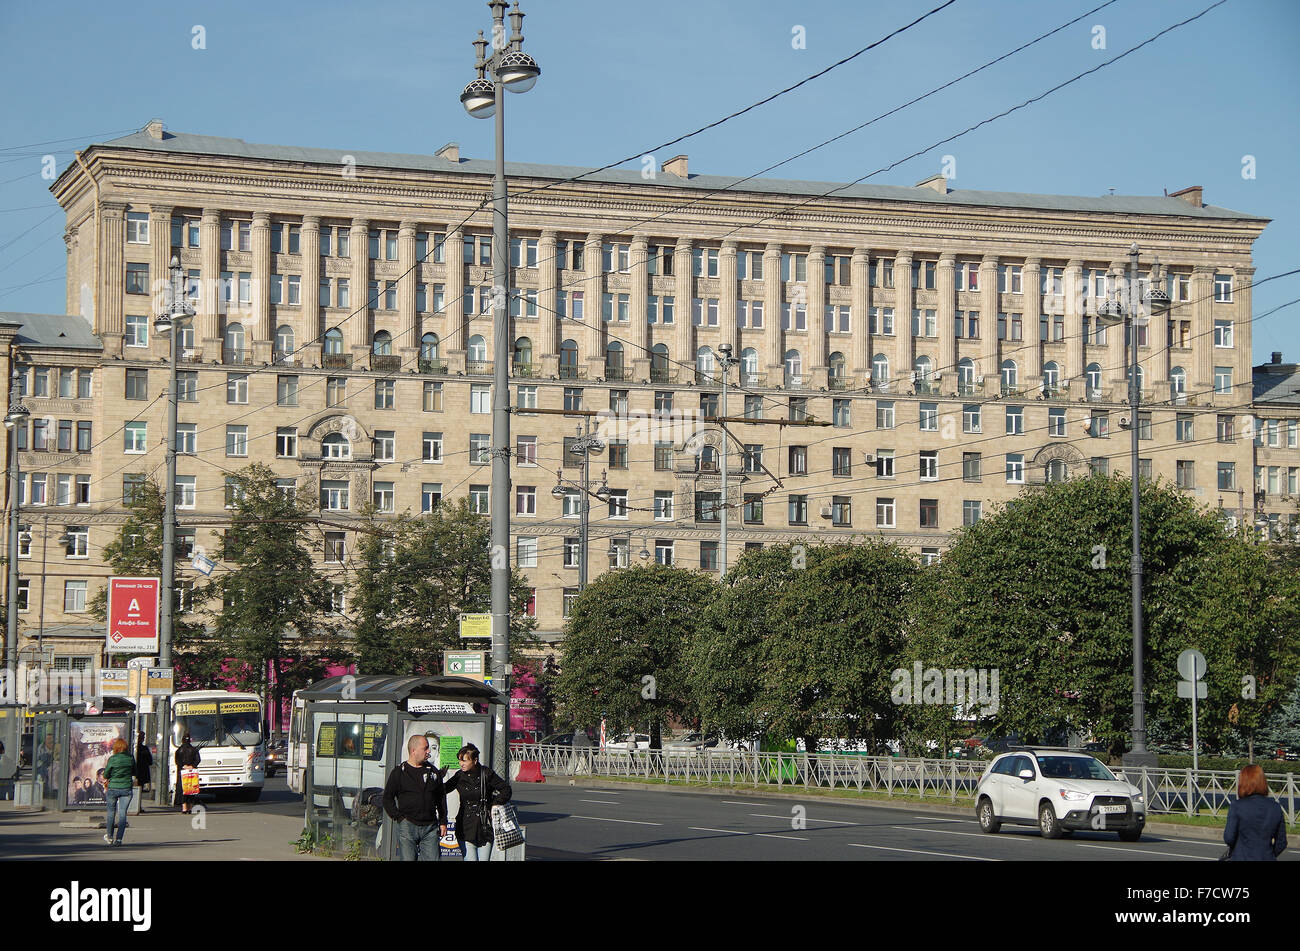 st petersburg russia stalinist apartment blocks stock photo royalty free image 90637657 alamy. Black Bedroom Furniture Sets. Home Design Ideas